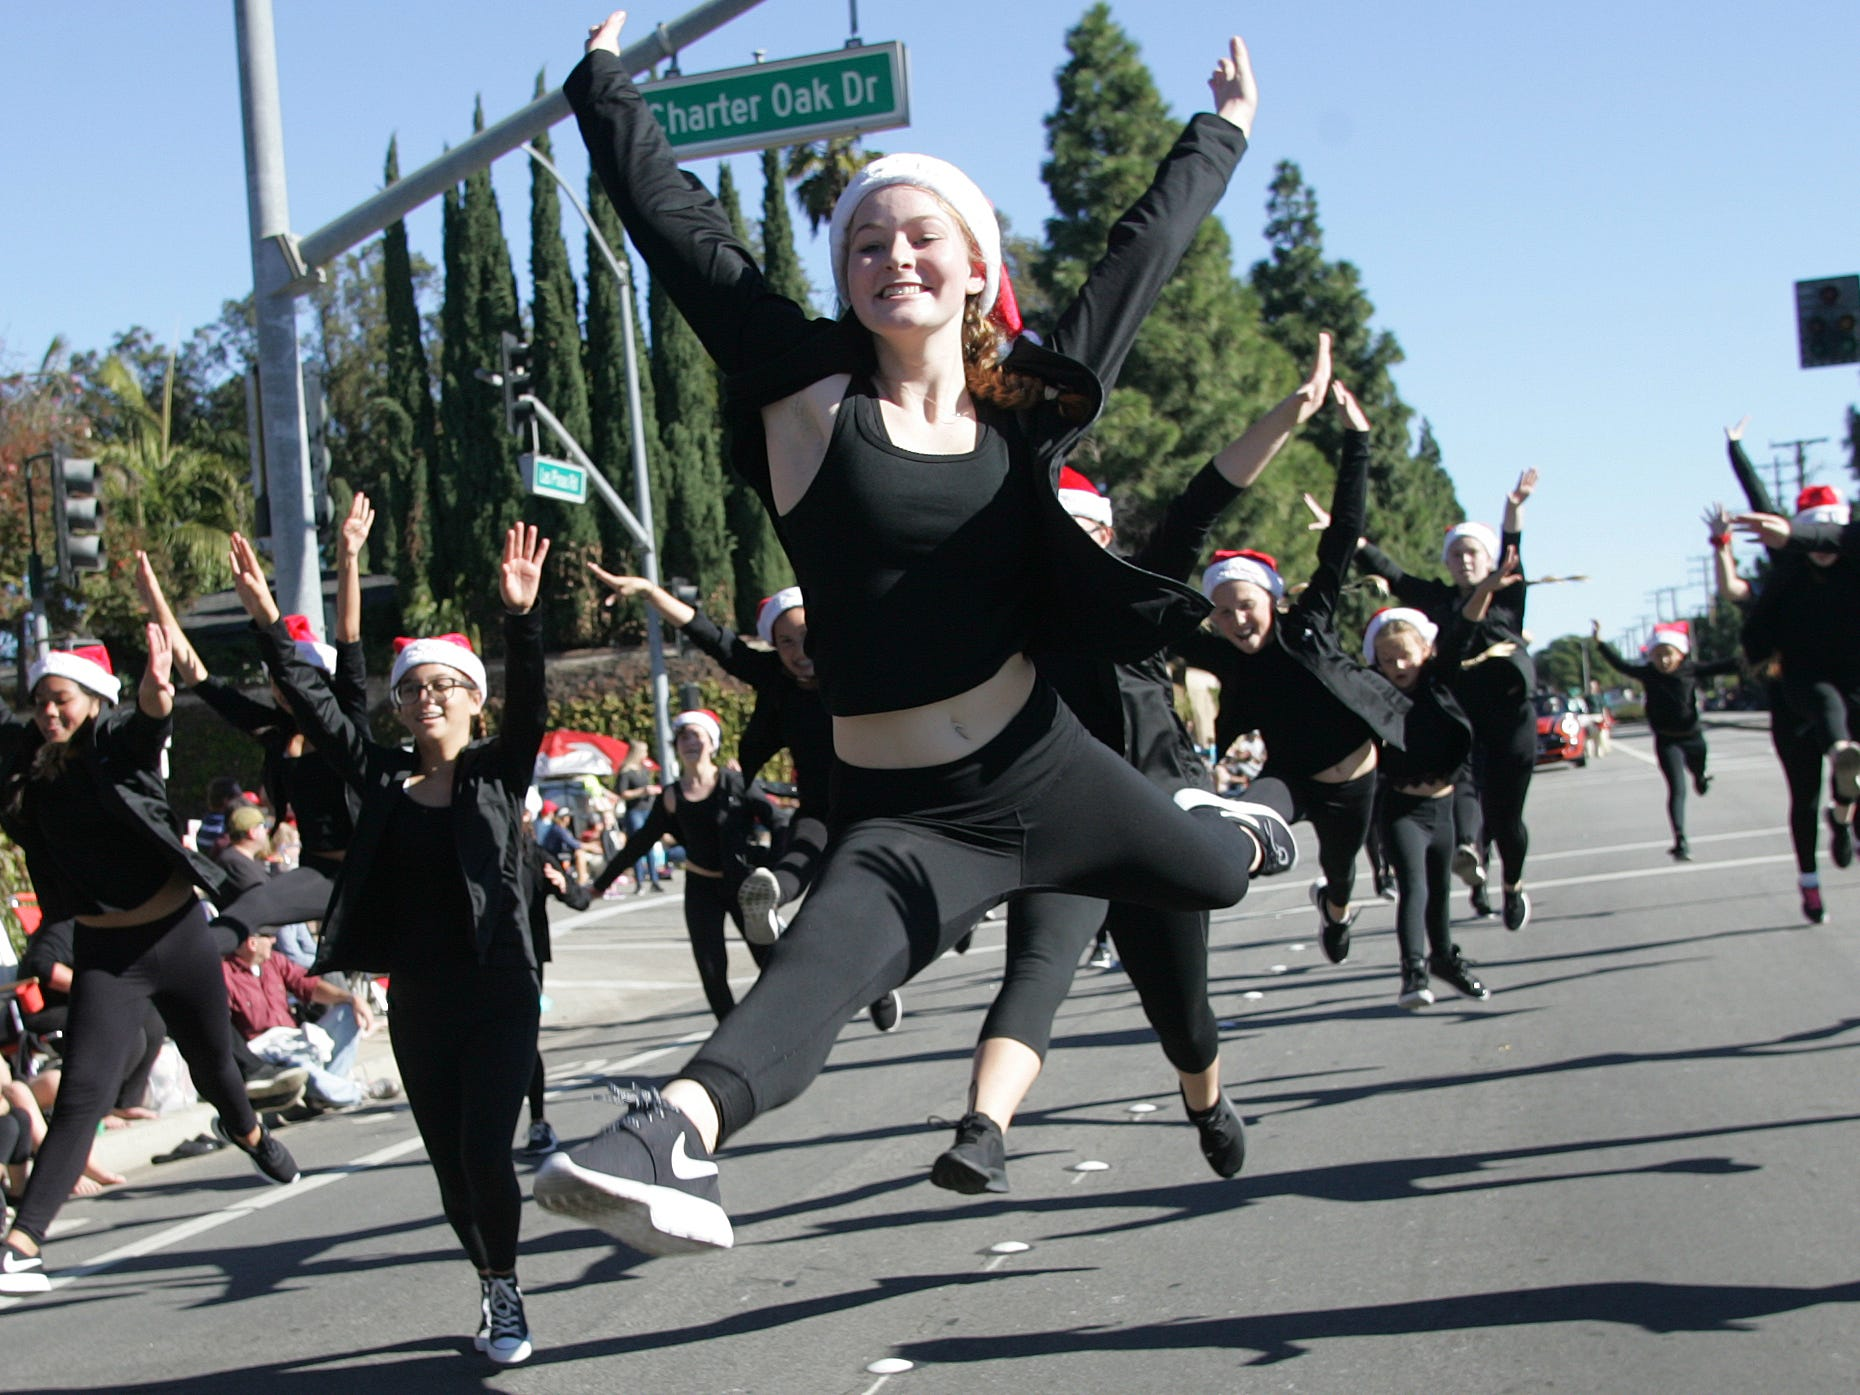 Chloe Leeds, center, from The Dance Company, performs in the Camarillo Christmas parade on Saturday.